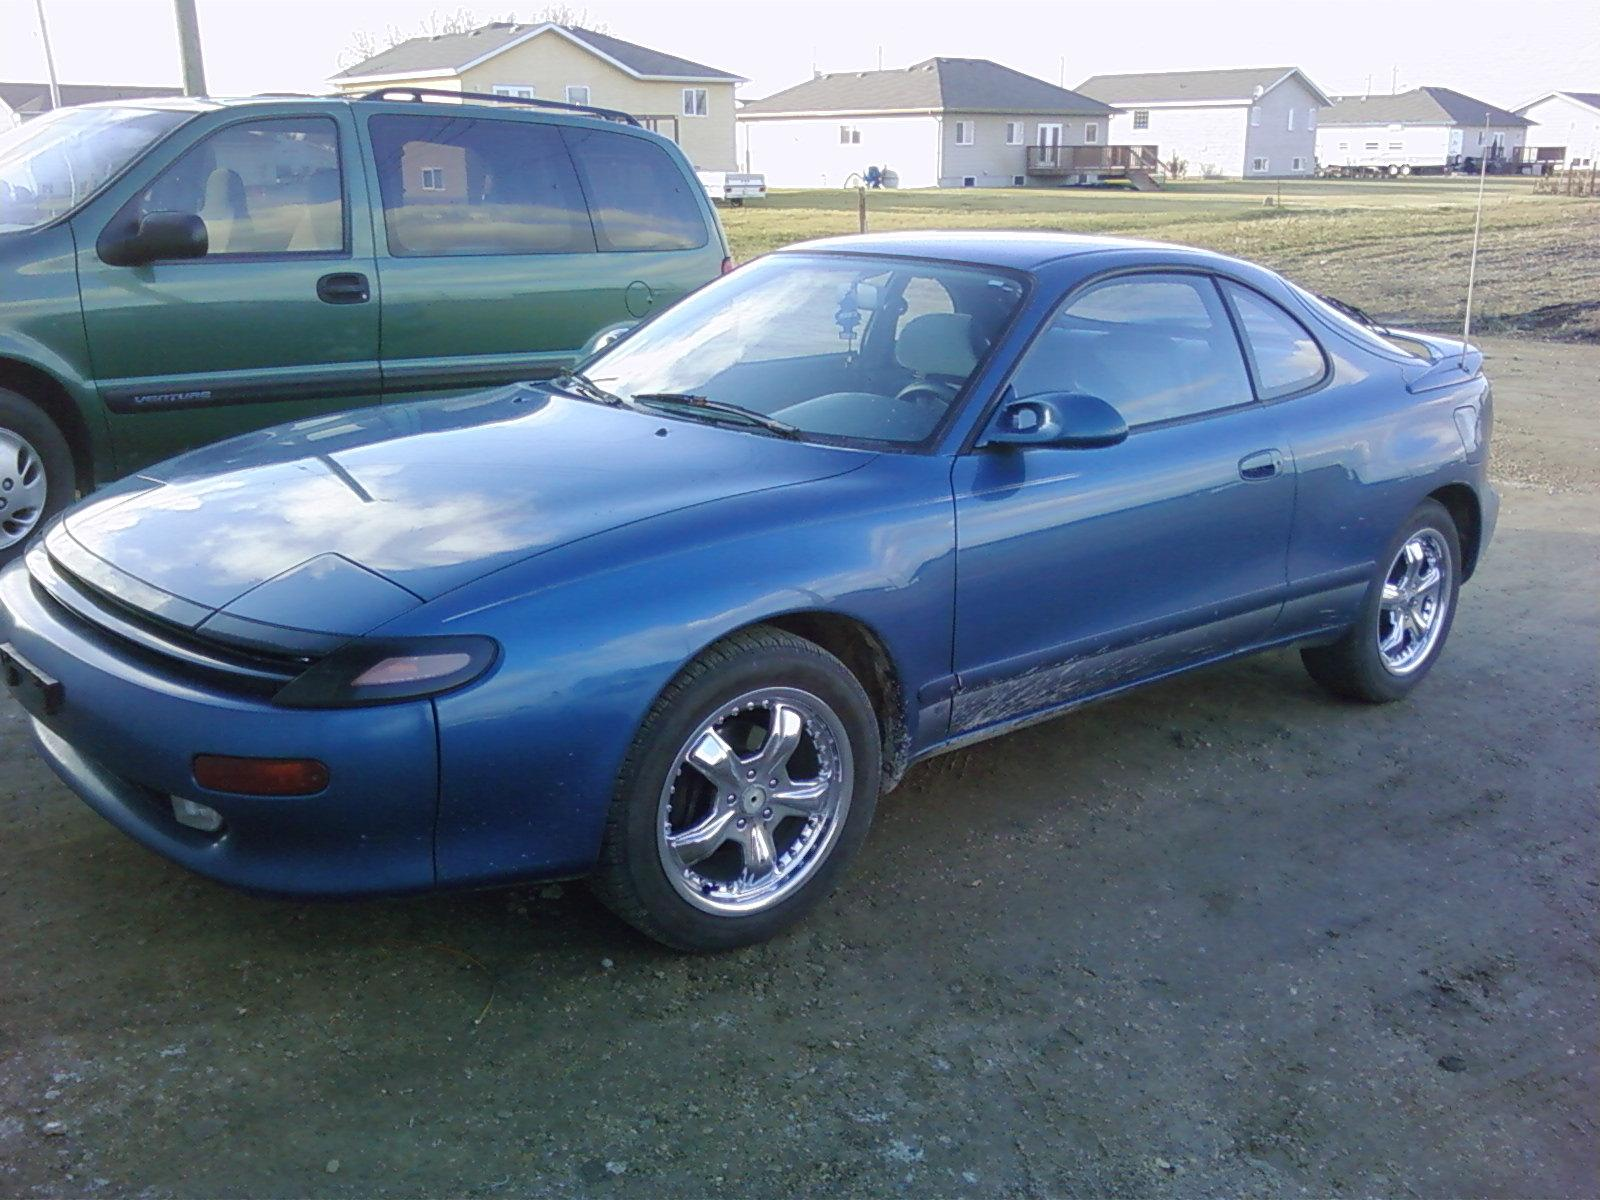 kona fr 1990 toyota celica specs photos modification info at cardomain. Black Bedroom Furniture Sets. Home Design Ideas